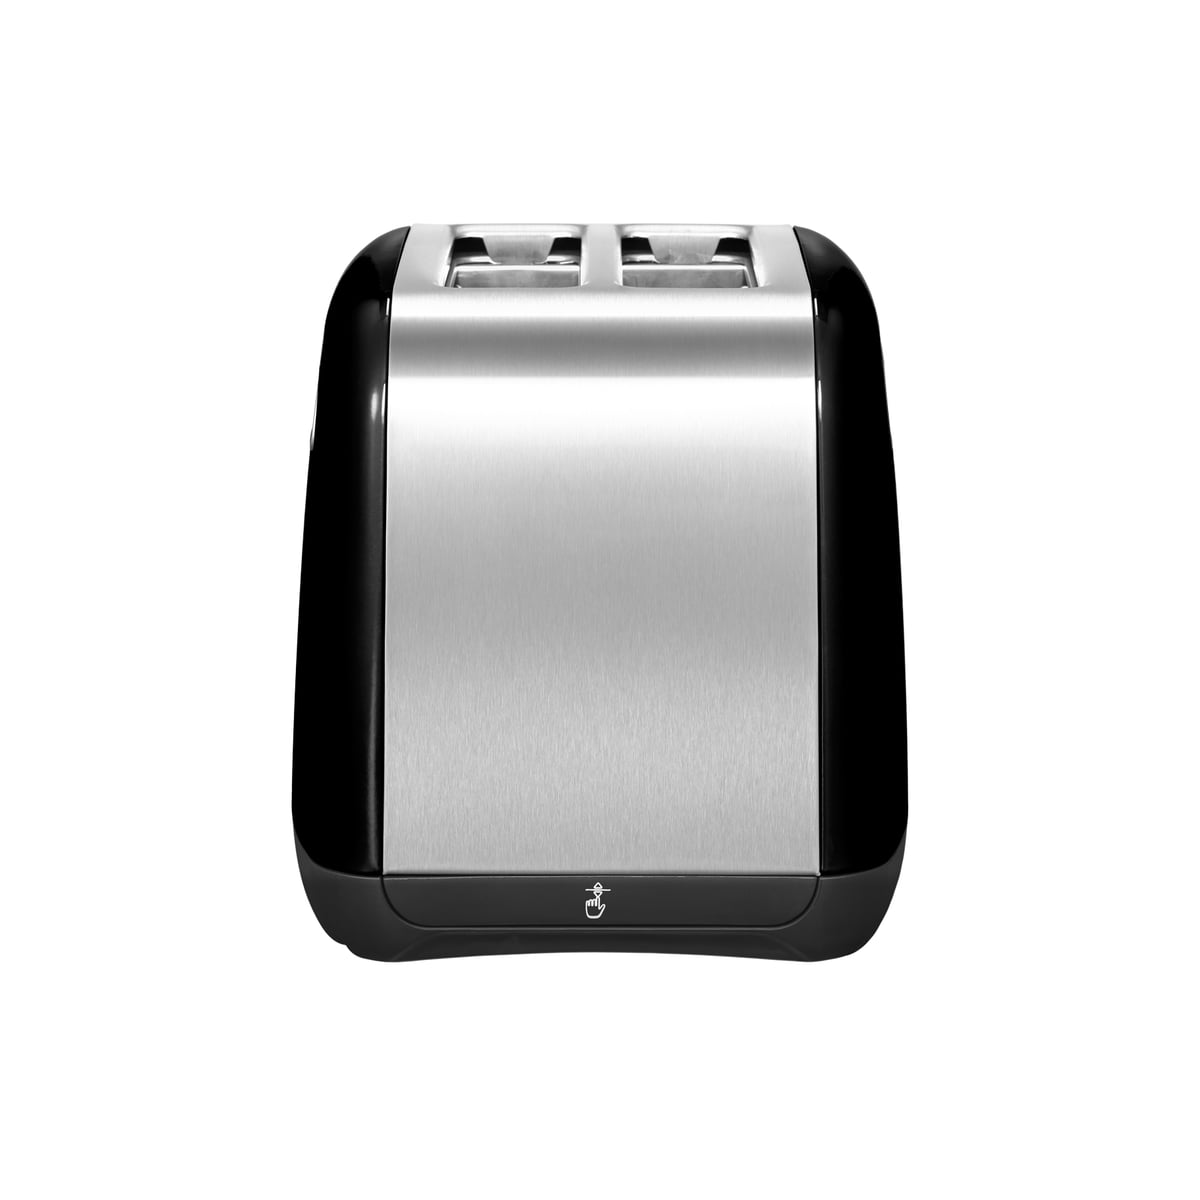 2-Slices Toaster by KitchenAid in the shop